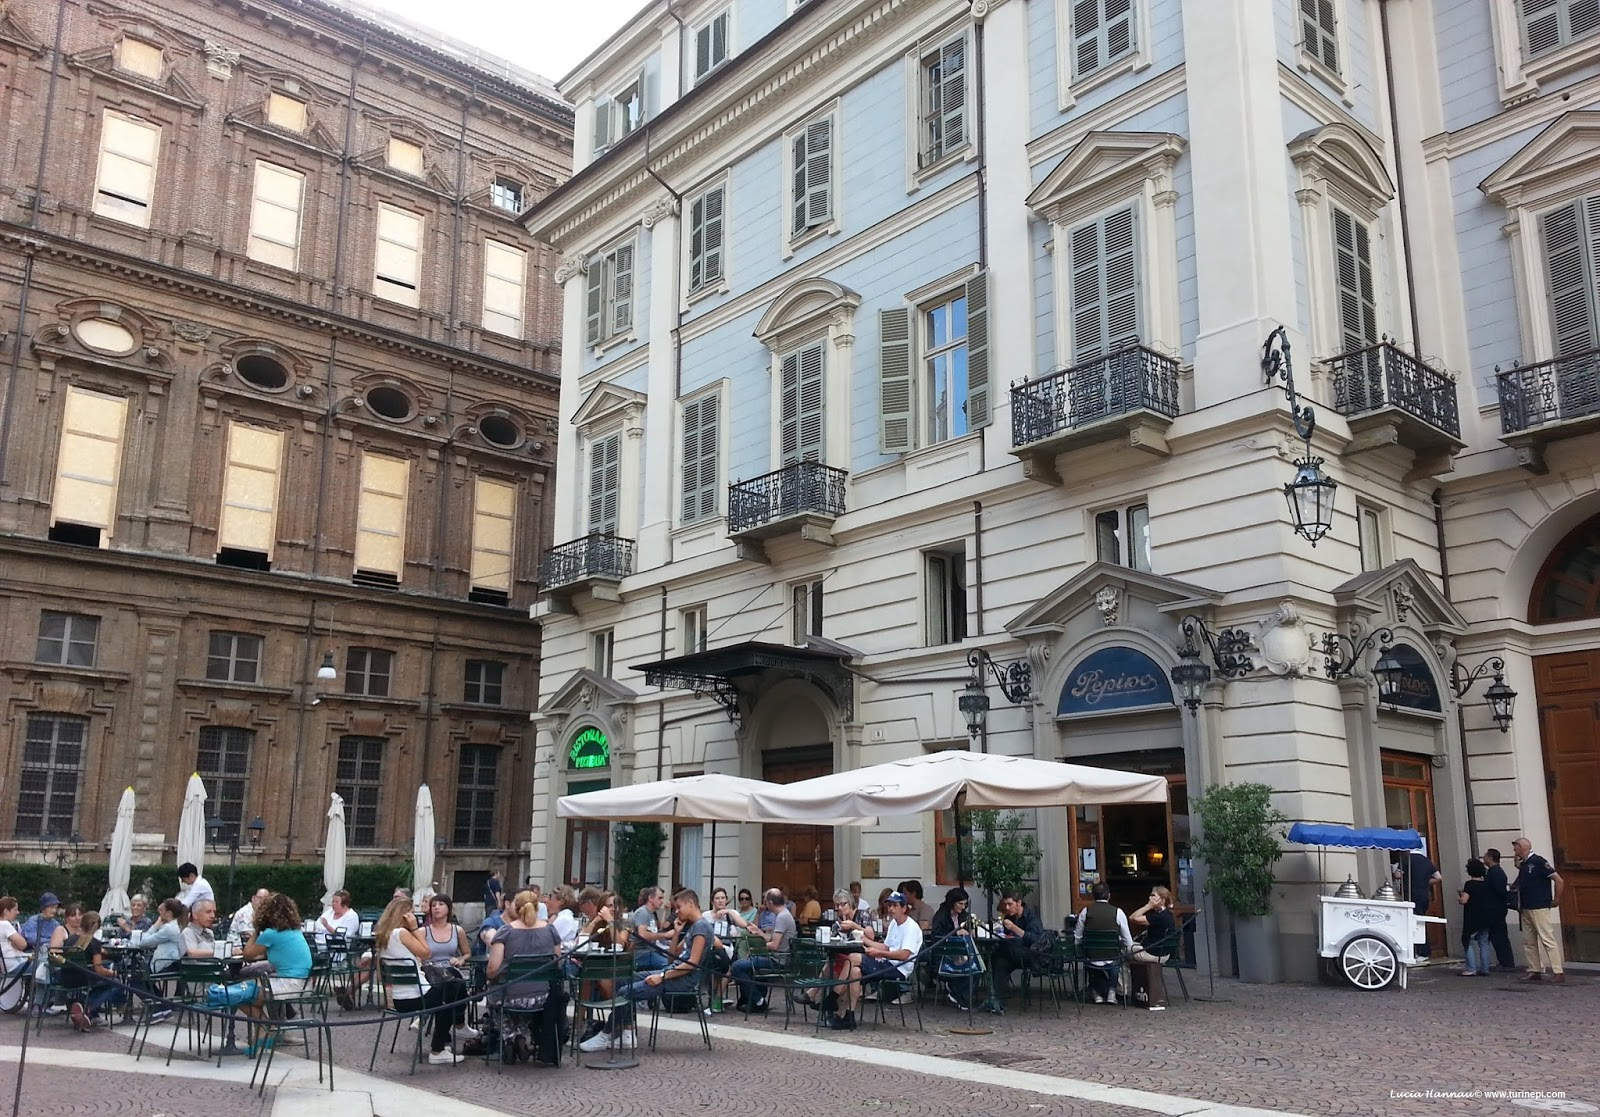 d0ac0eaa7d81 A special mention is for Pepino s gelato and the overall café